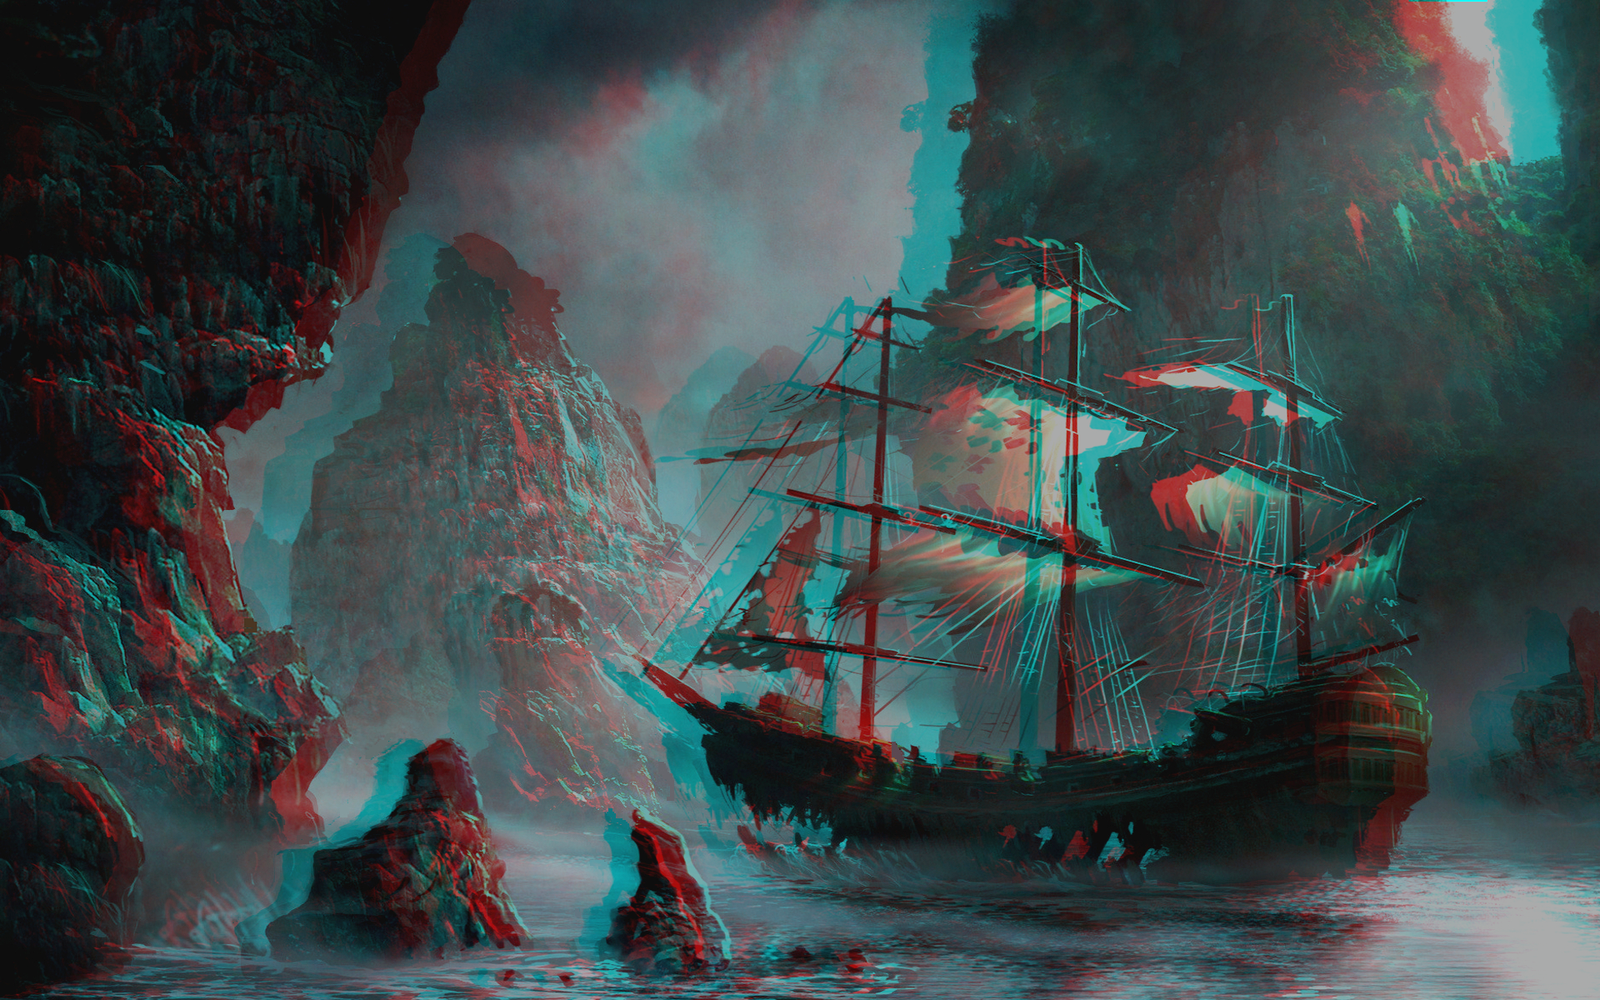 how to make anaglyph 3d glasses